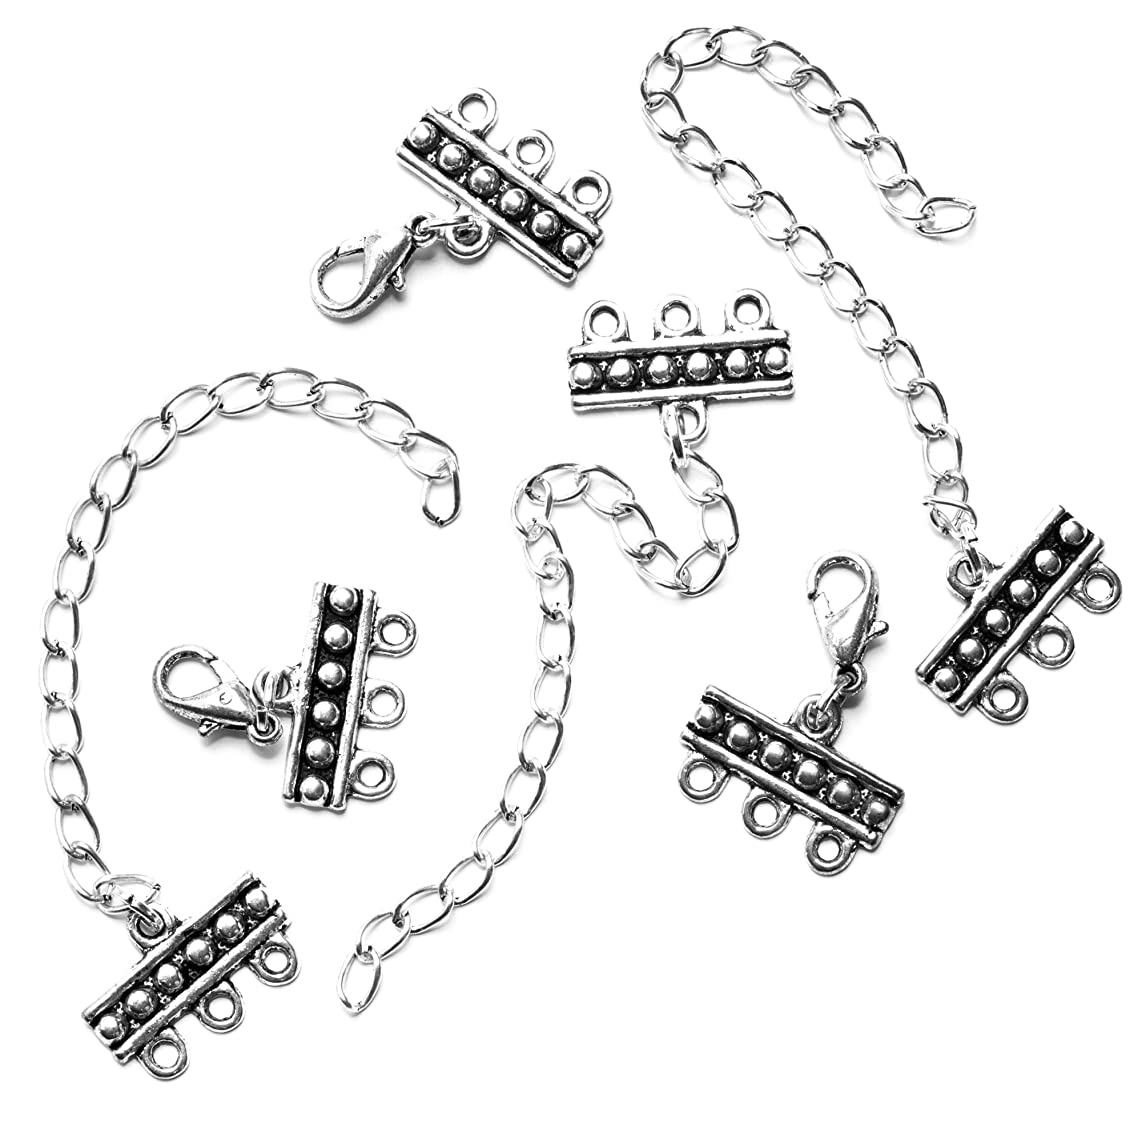 3 Strand Silver Metal Clasps with Extender Chains